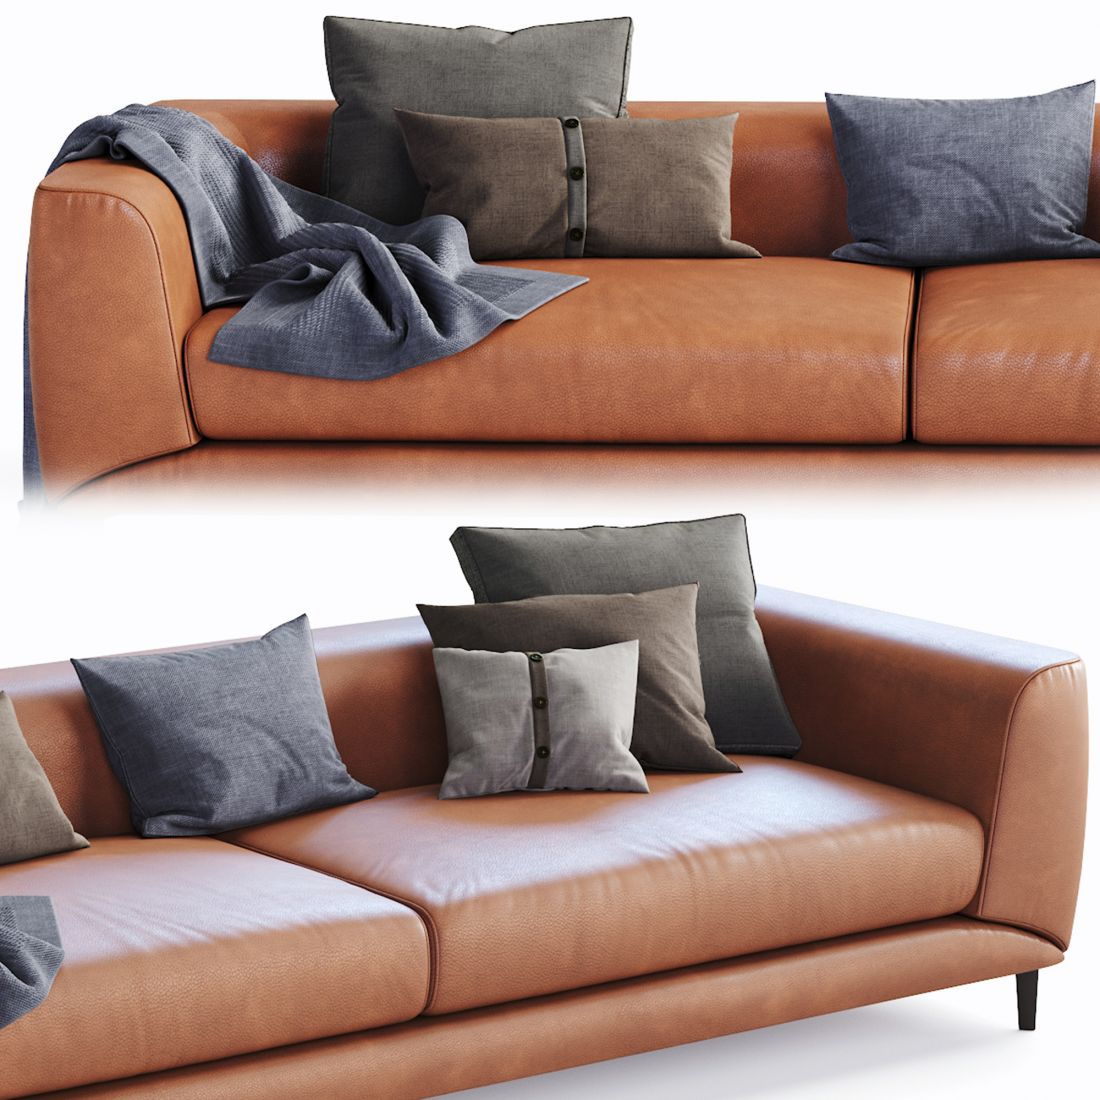 Sofa Boconcept Boconcept Sofa Fargo - 3d Model For Corona